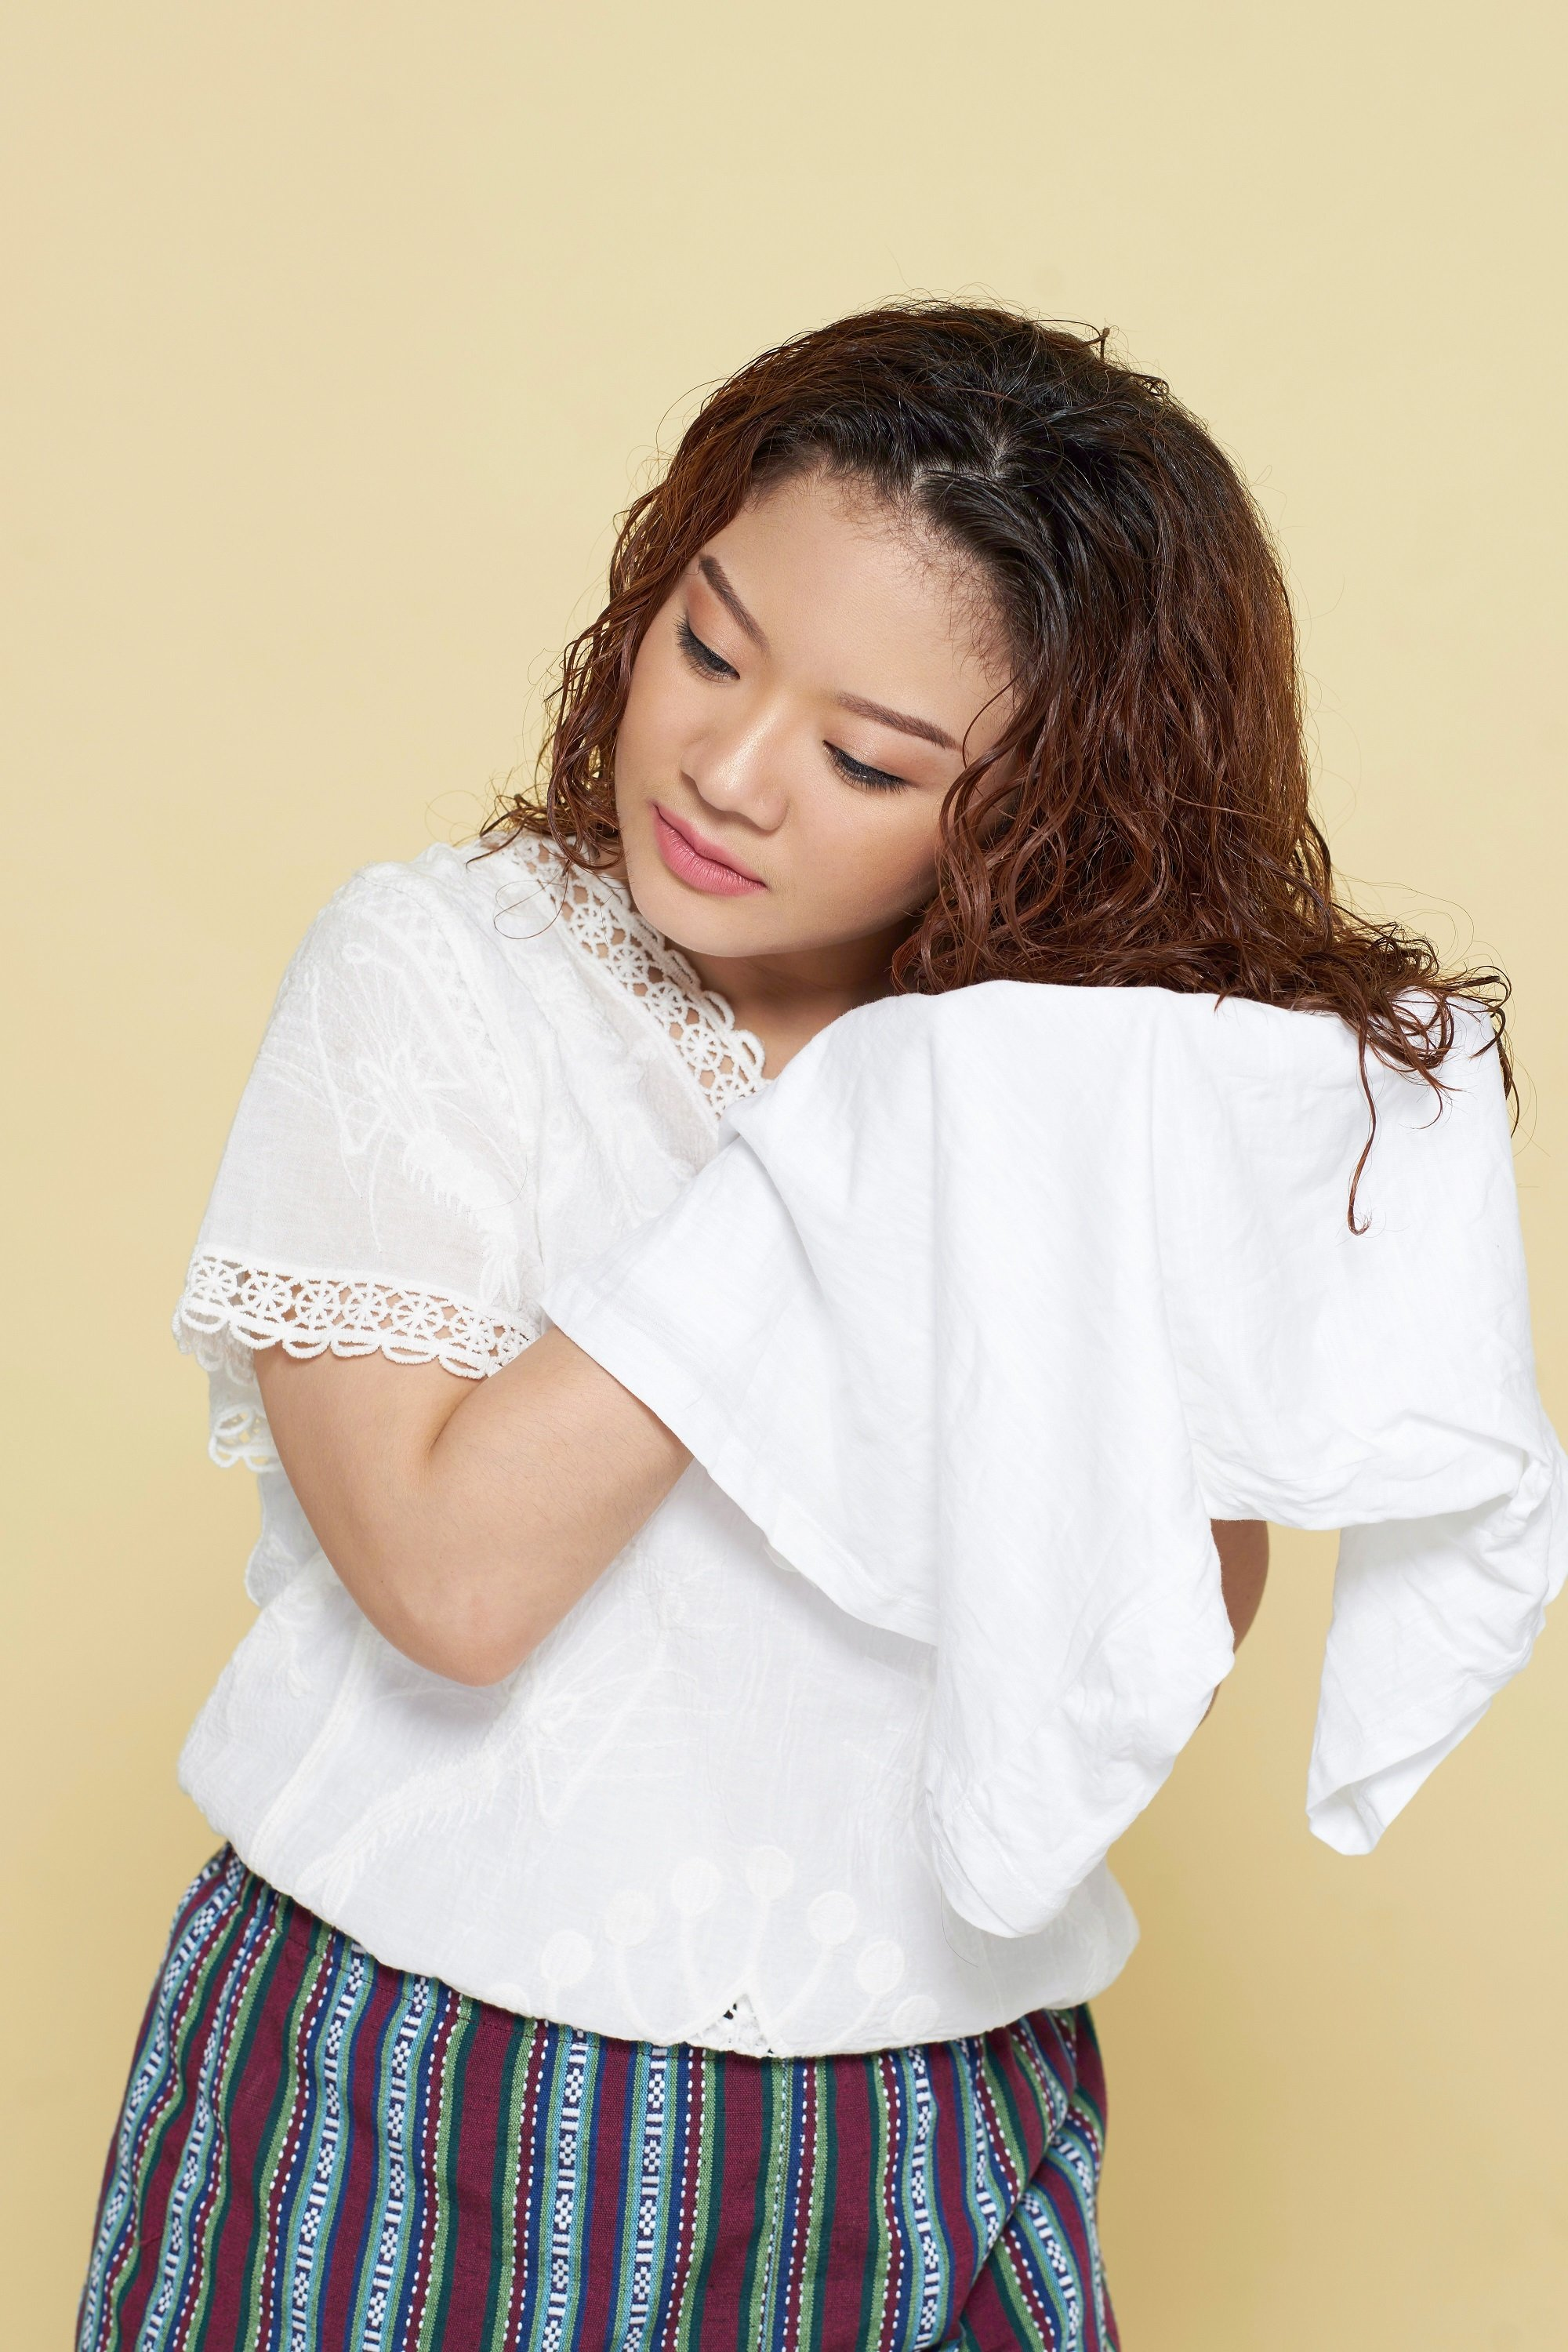 How to get beautiful hair: Asian woman squeezing her long curly hair with a white shirt